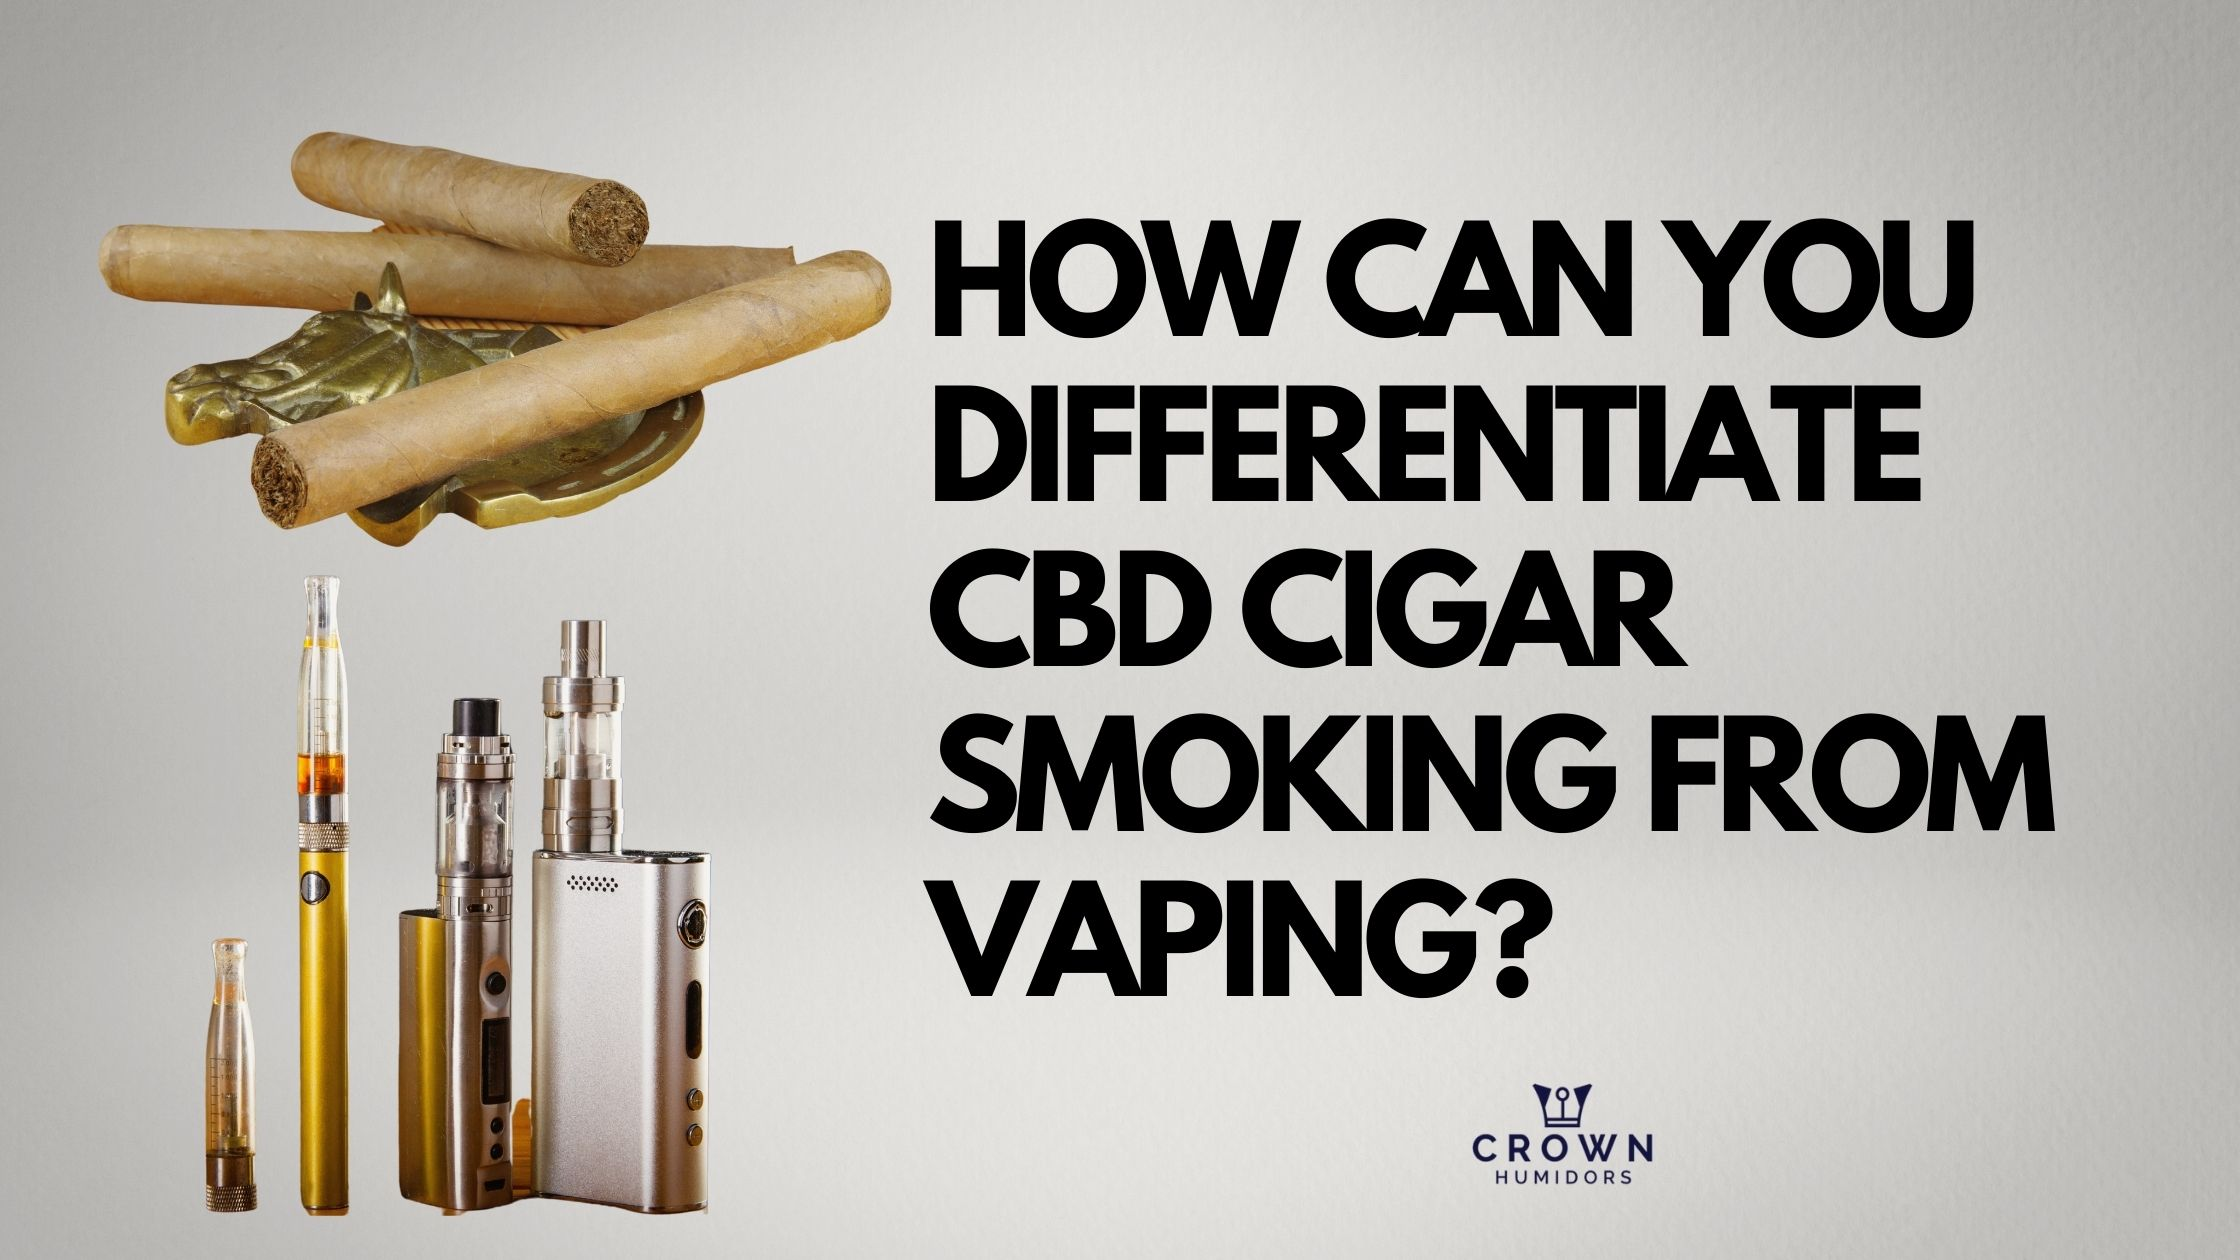 HOW CAN YOU DIFFERENTIATE CBD CIGAR SMOKING FROM VAPING?